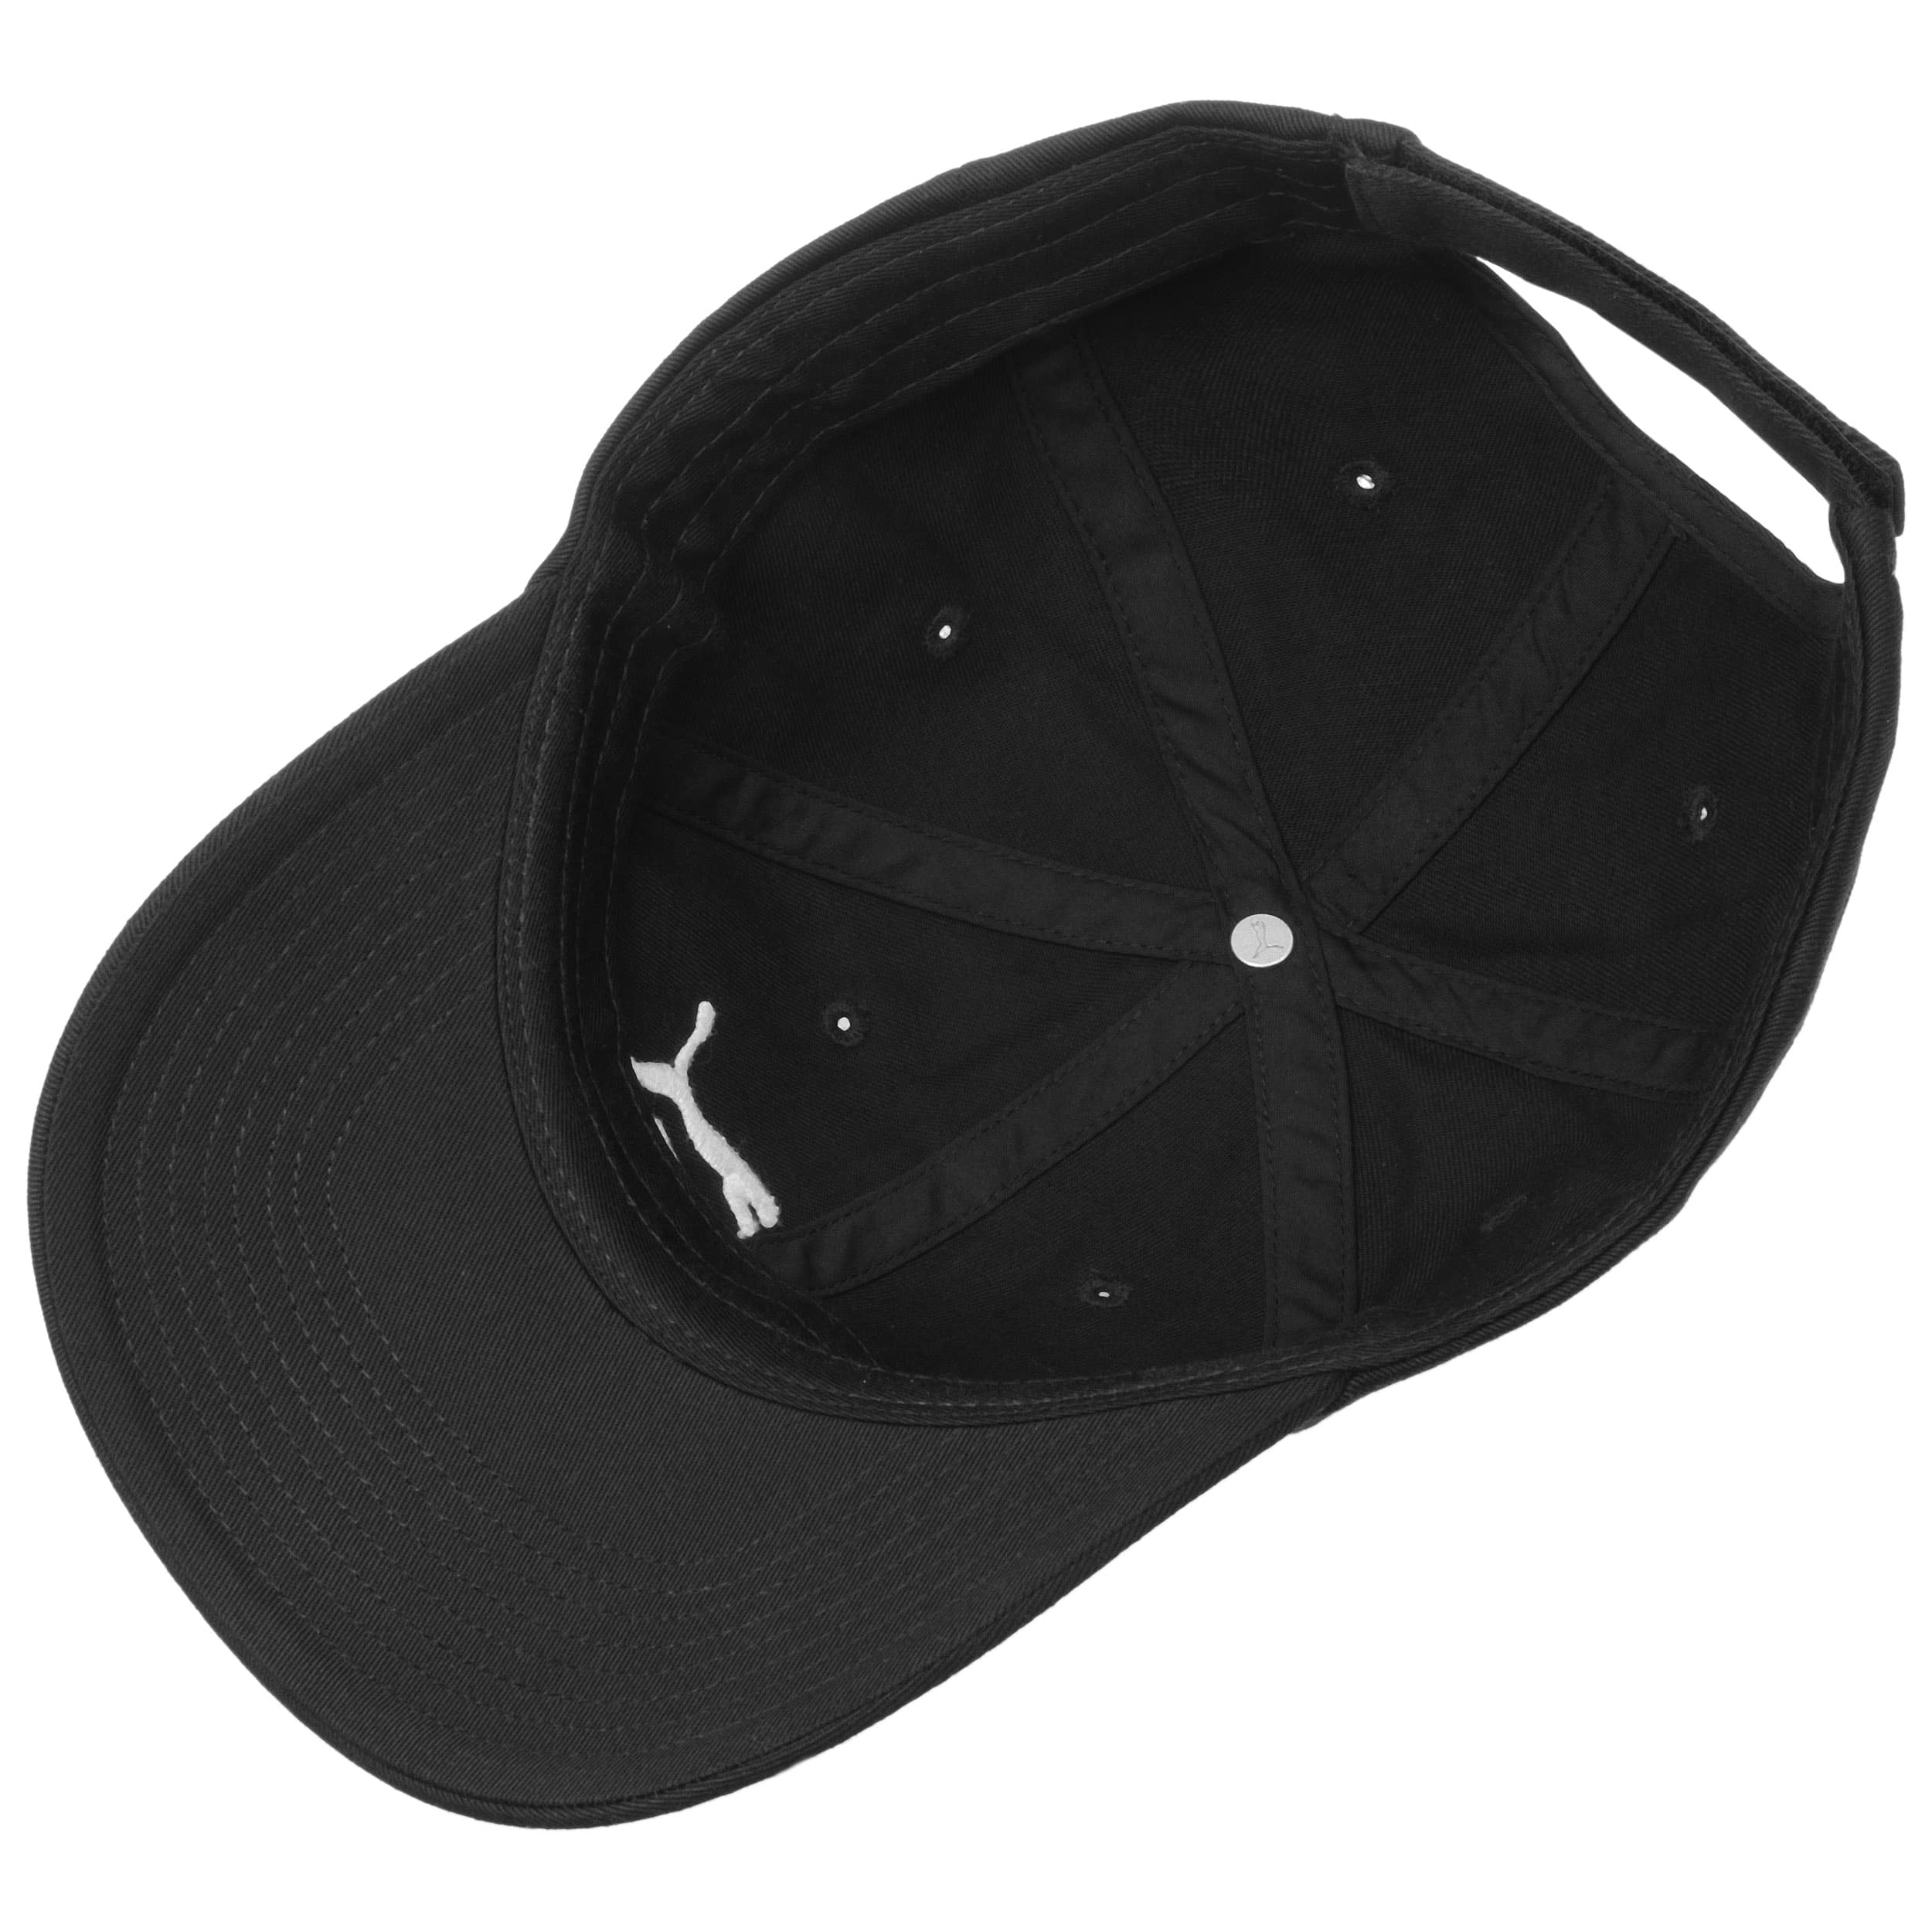 1 Baseball Cap by PUMA - black 2 ... 5cddd6018256